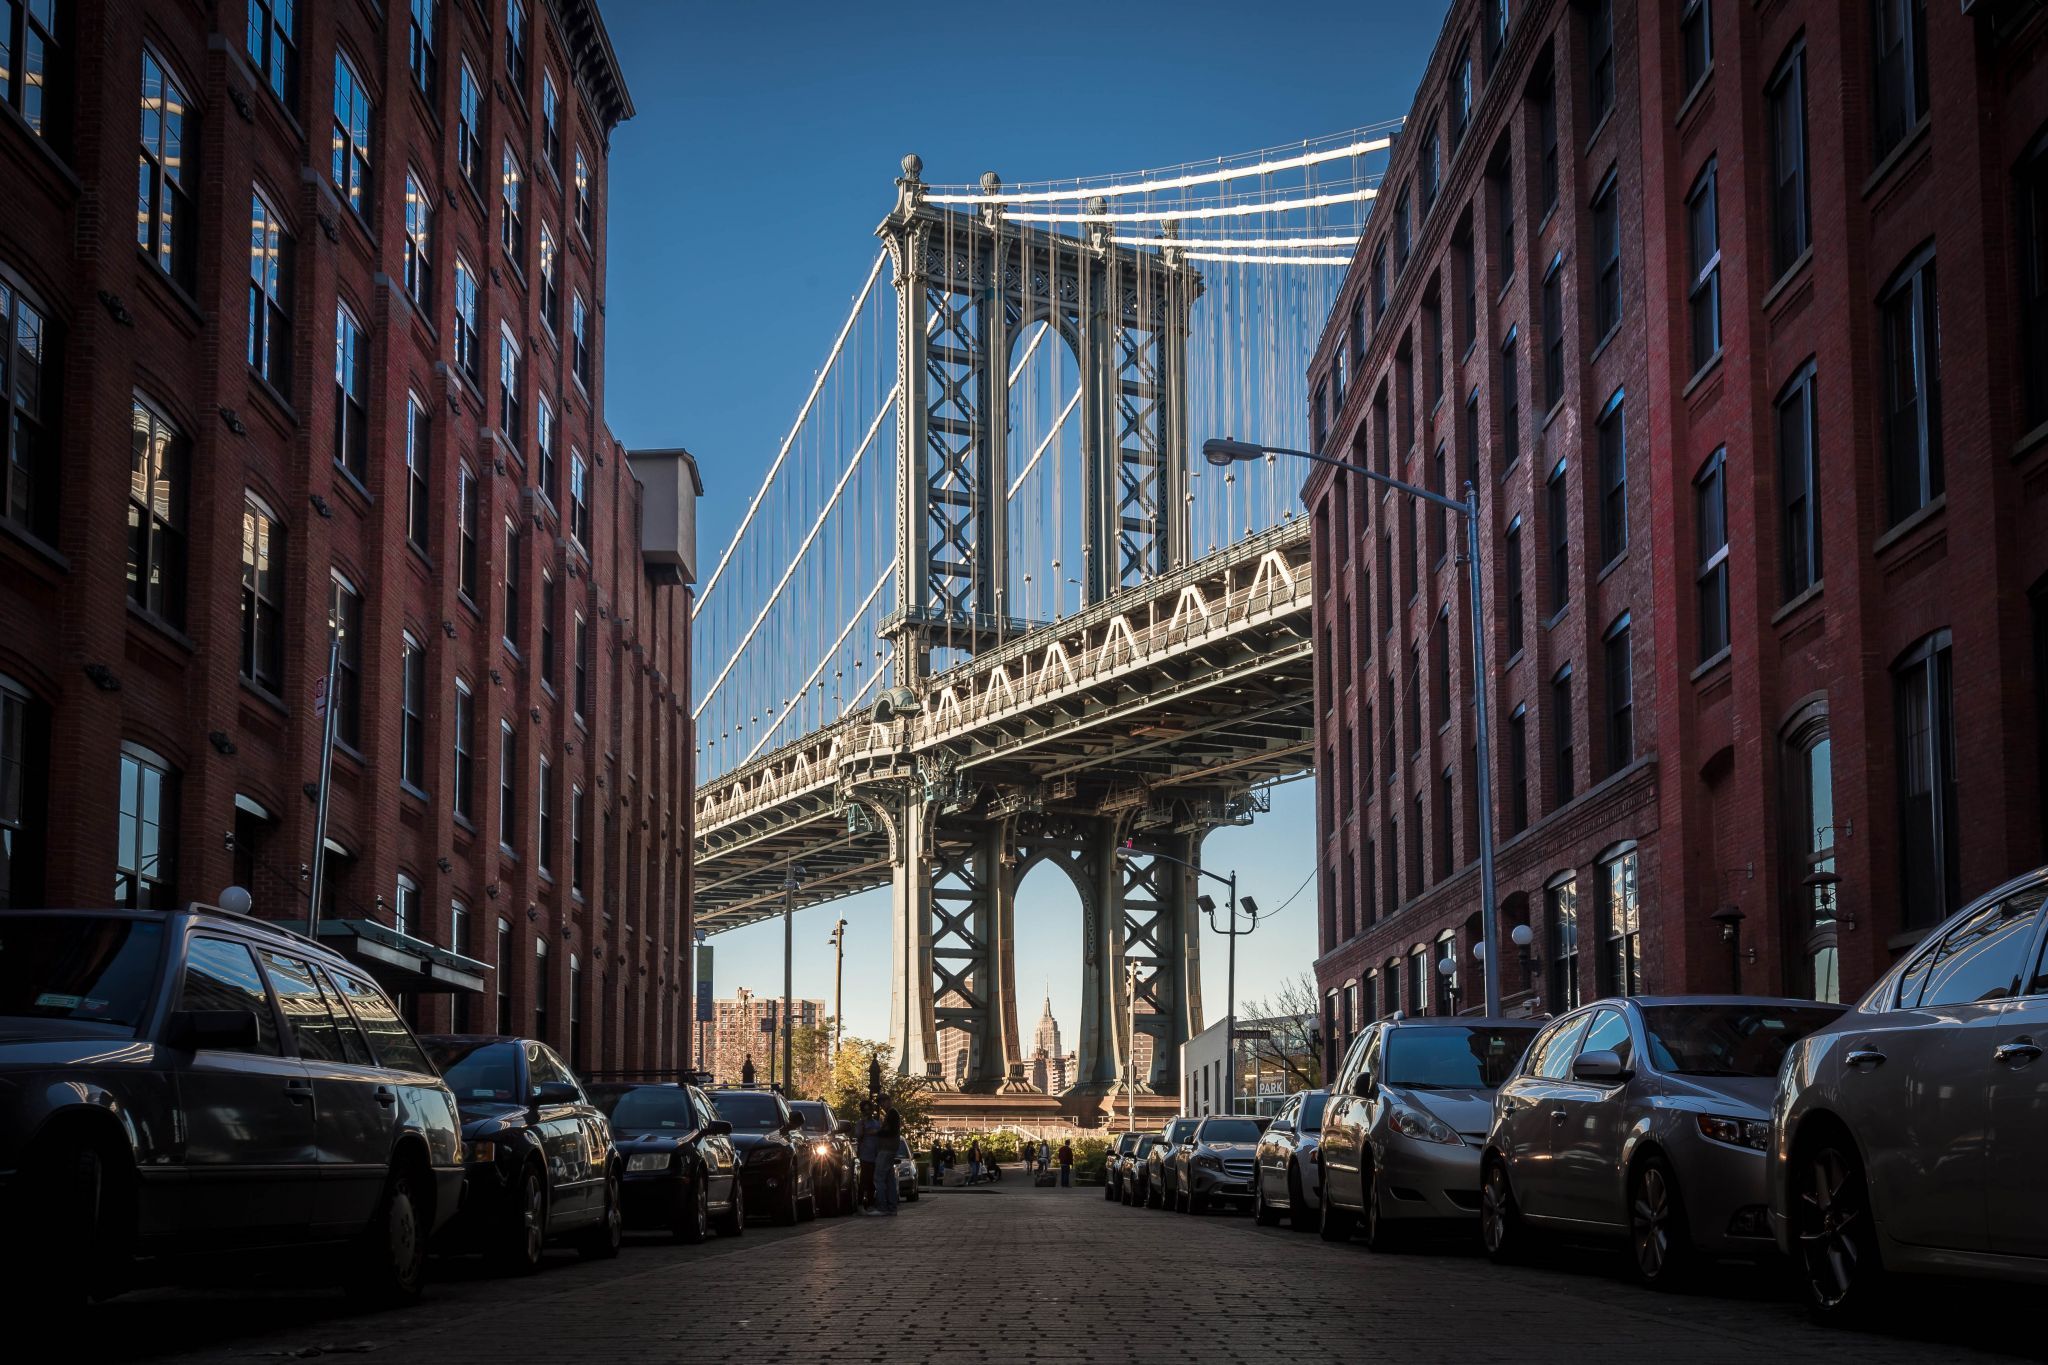 Manhatten Bridge from Washington St., NYC, USA, USA